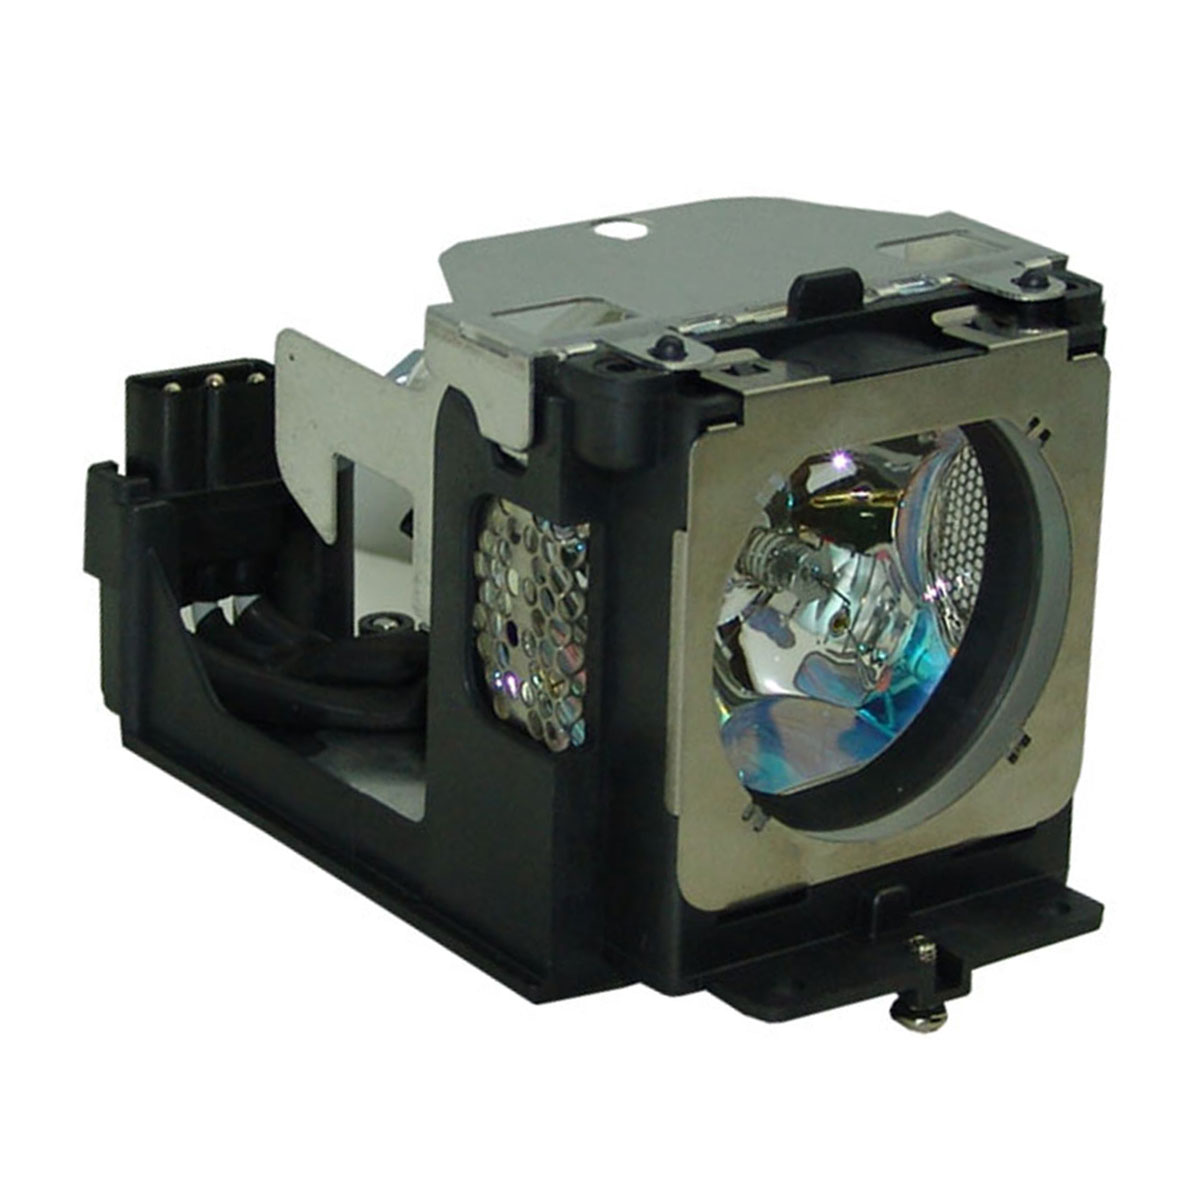 Lutema Platinum Bulb for Sanyo PLC-XU115W Projector Lamp with Housing (Original Philips Inside) - image 3 of 5